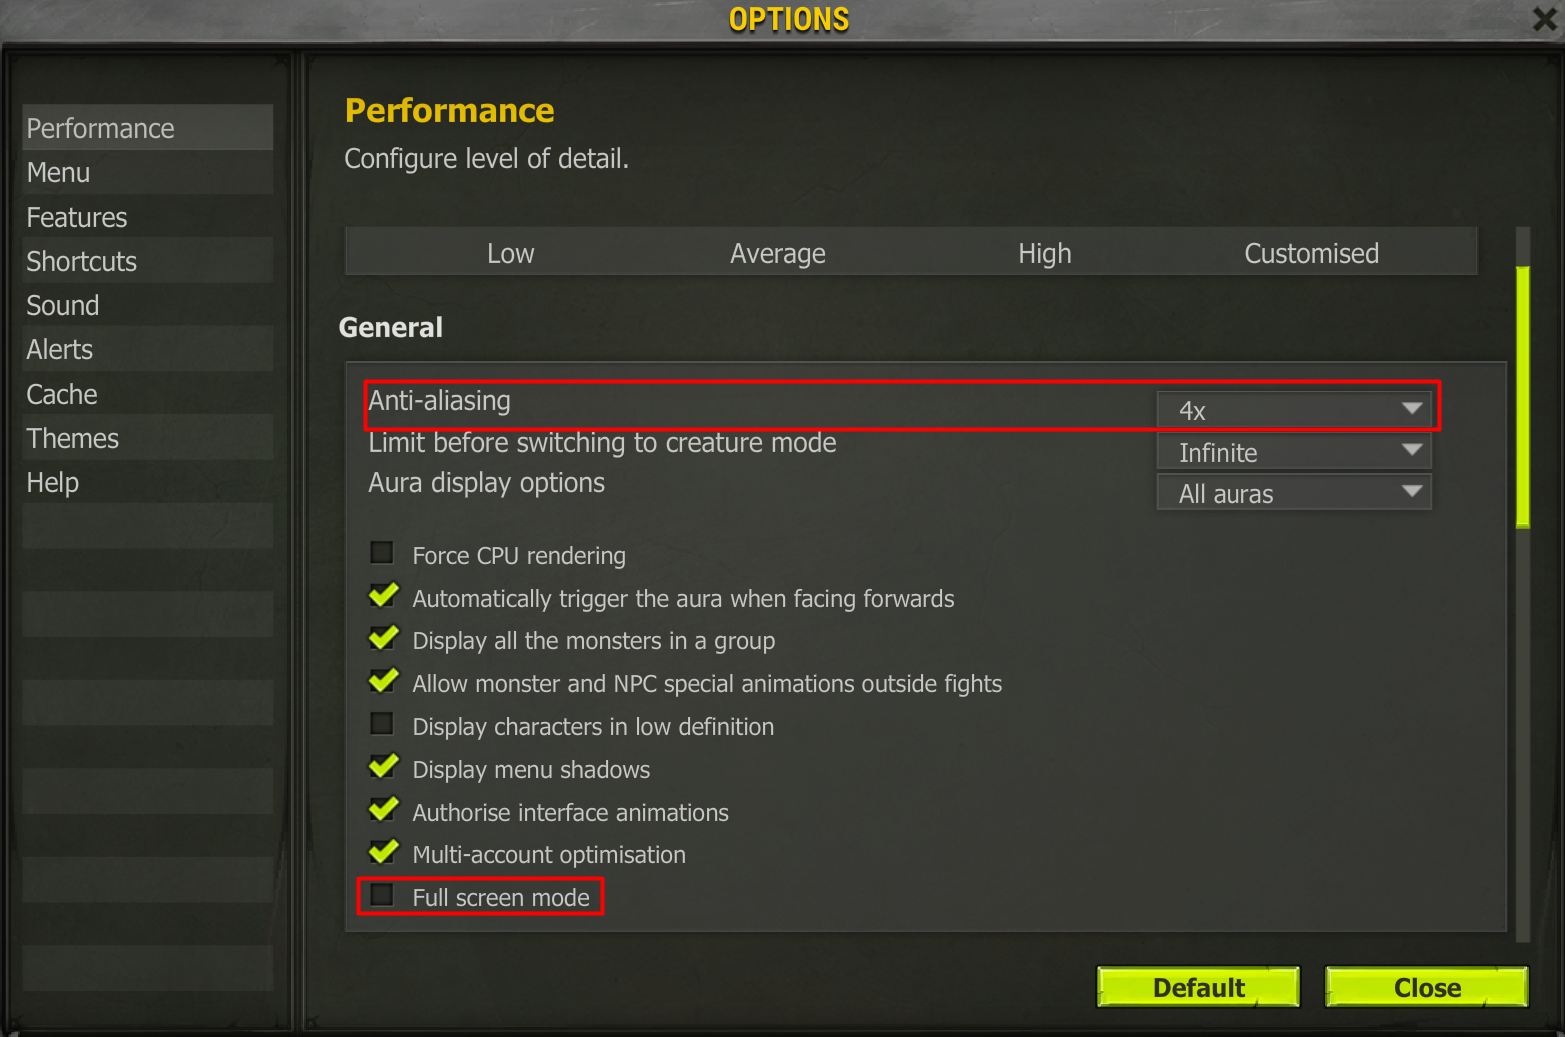 Assign the correct Performance settings in-game